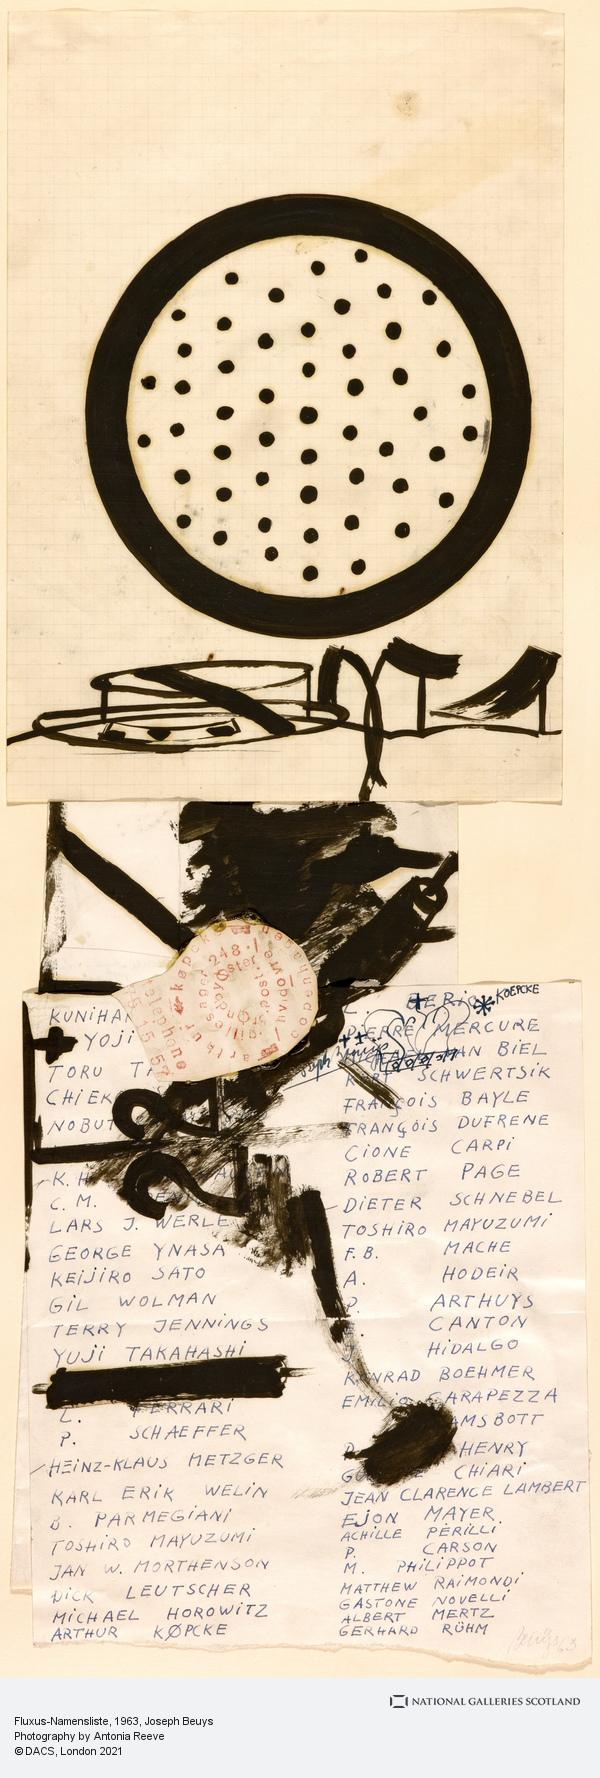 Joseph Beuys, Fluxus-Namensliste [Fluxux-Name List] (1963)